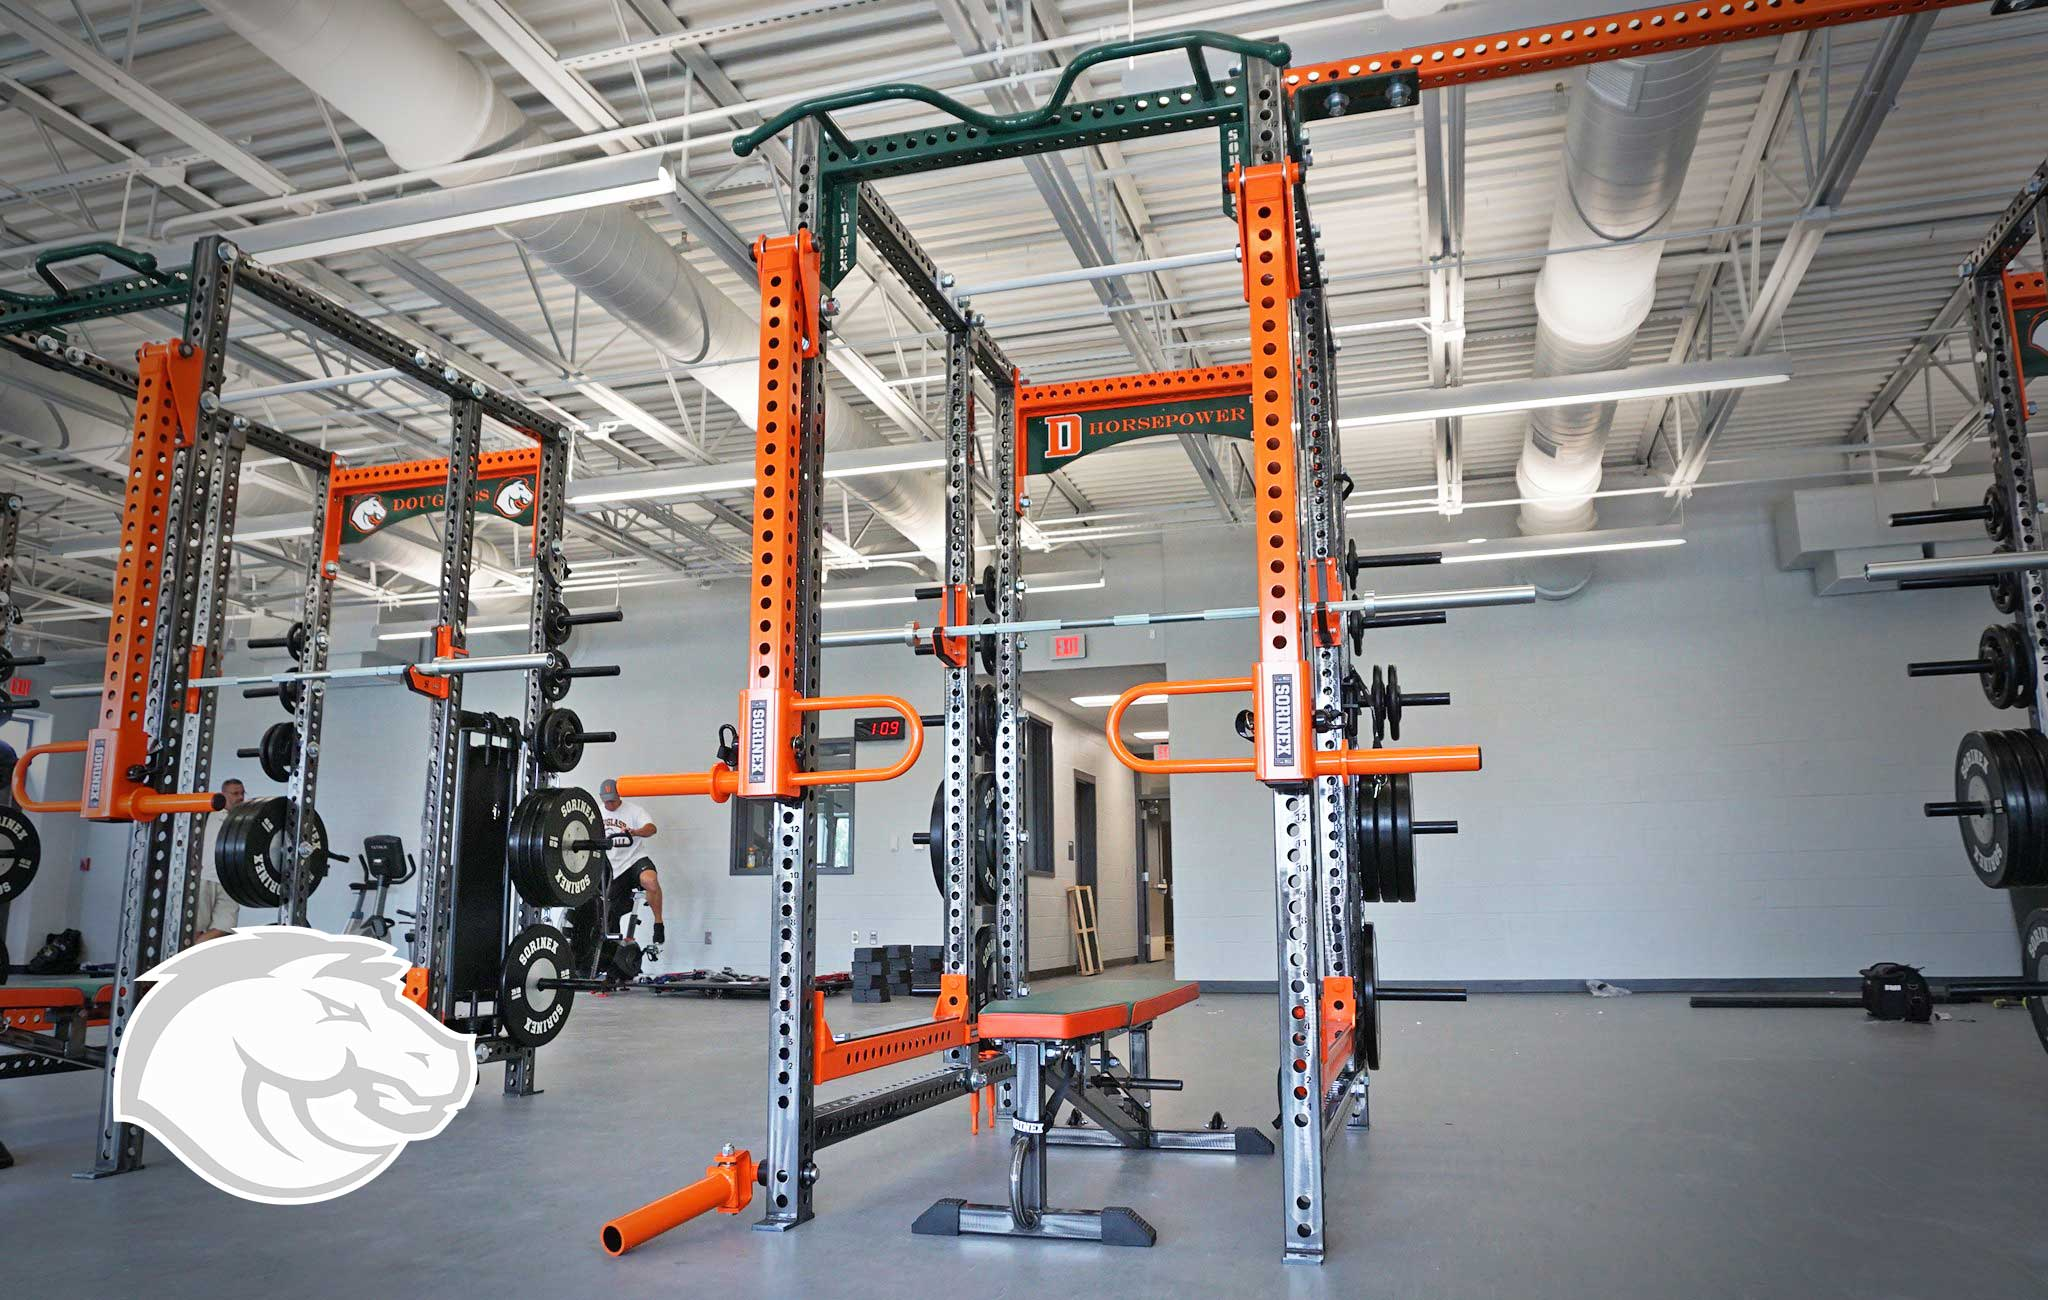 Fredrick Douglass high school Sorinex strength and conditioning facility